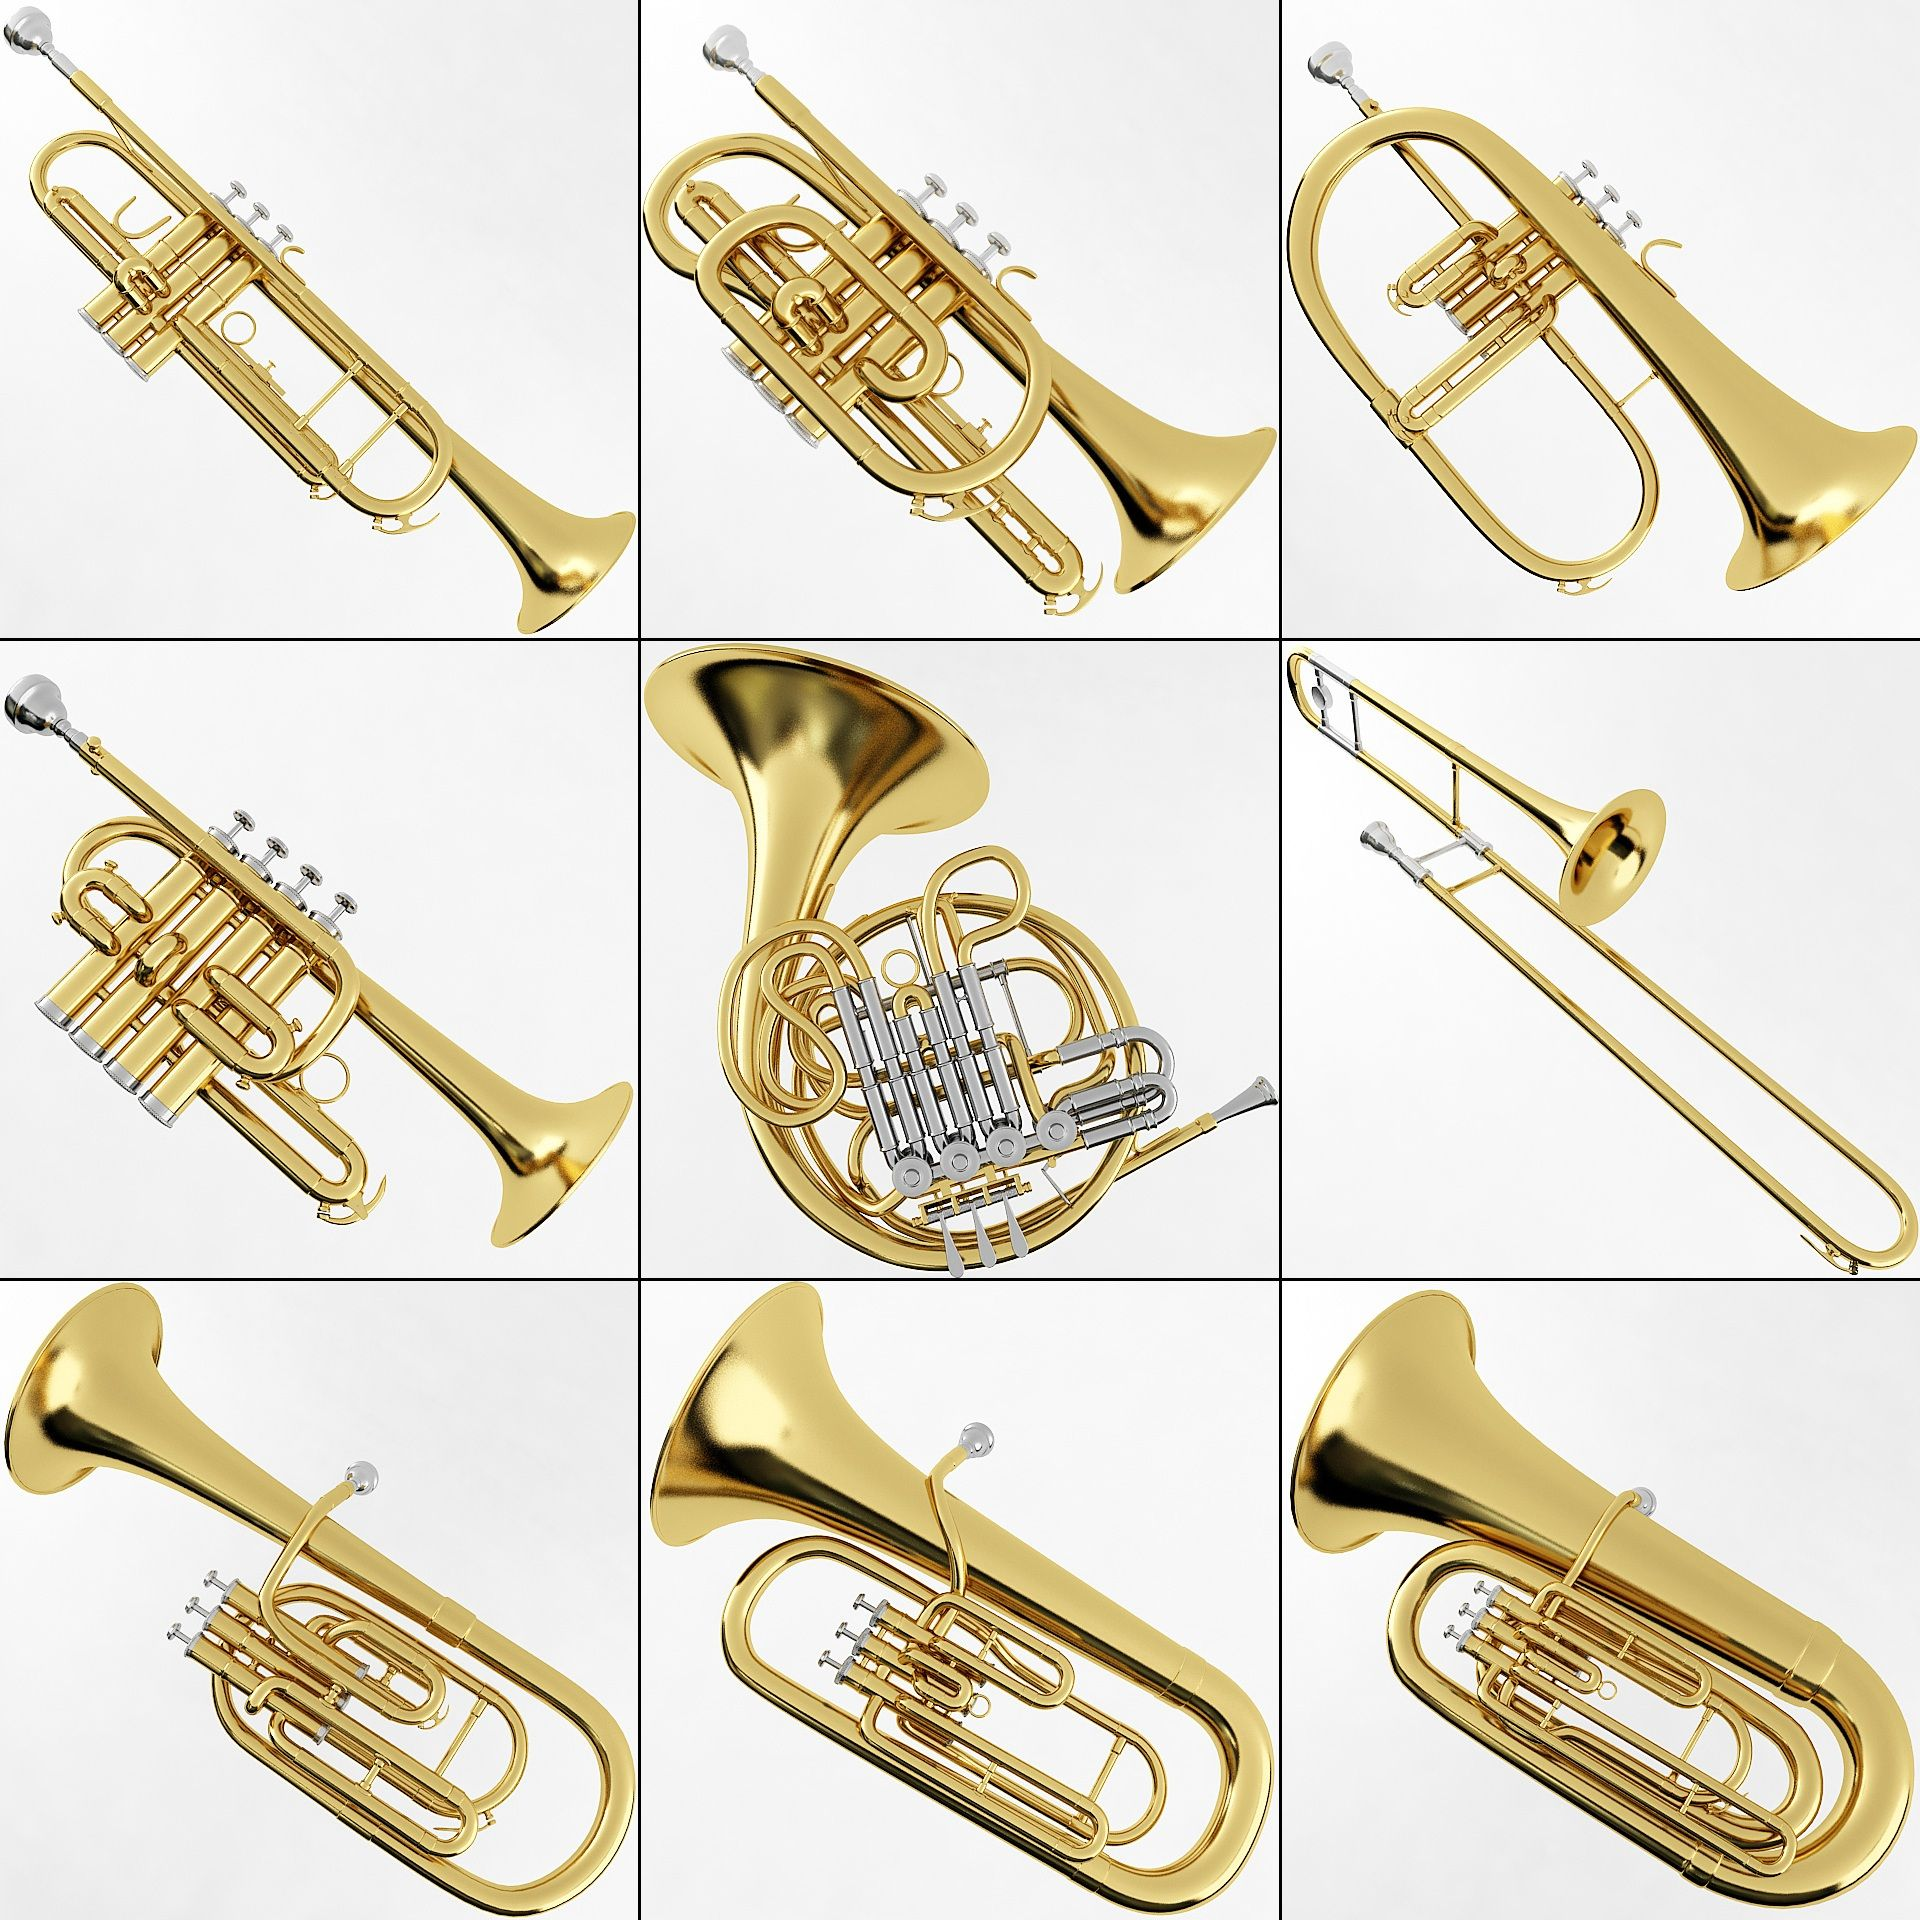 Brass Instruments Are Classified As